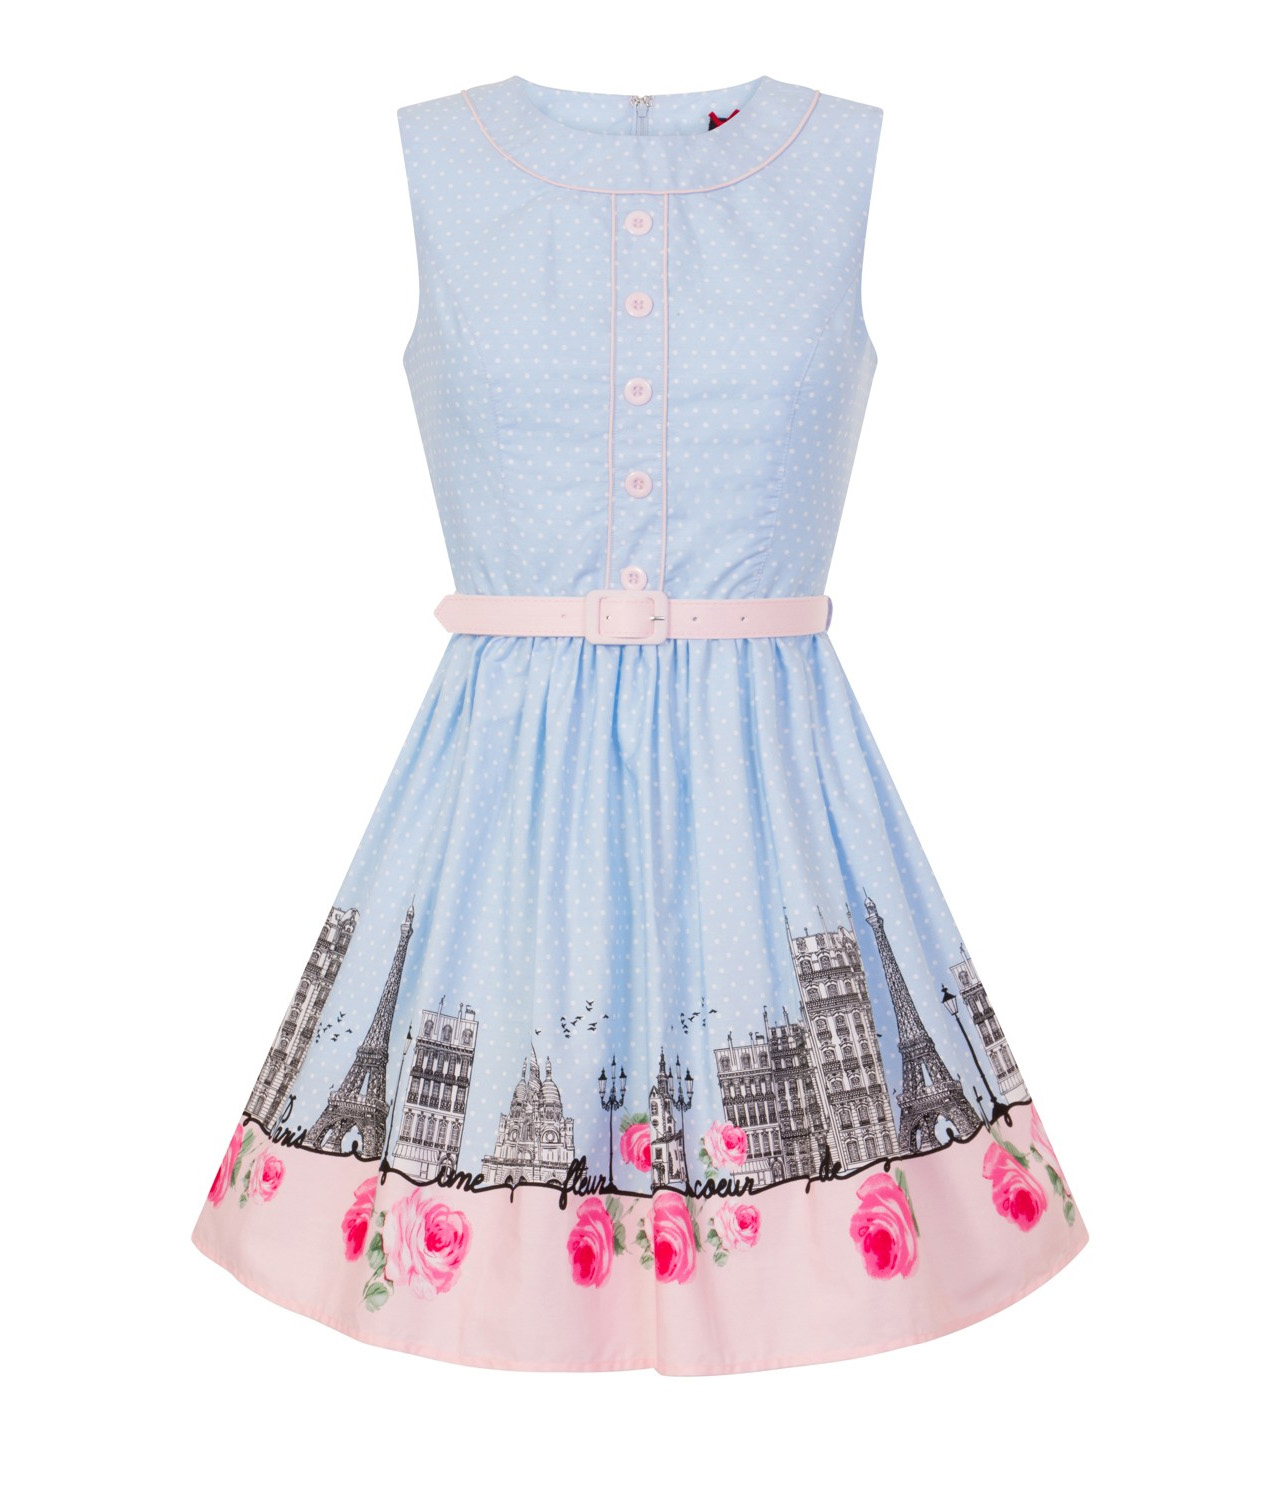 Hell-Bunny-50s-Vintage-Blue-Polka-Dot-PANAME-Mini-Dress-Paris-All-Sizes thumbnail 11